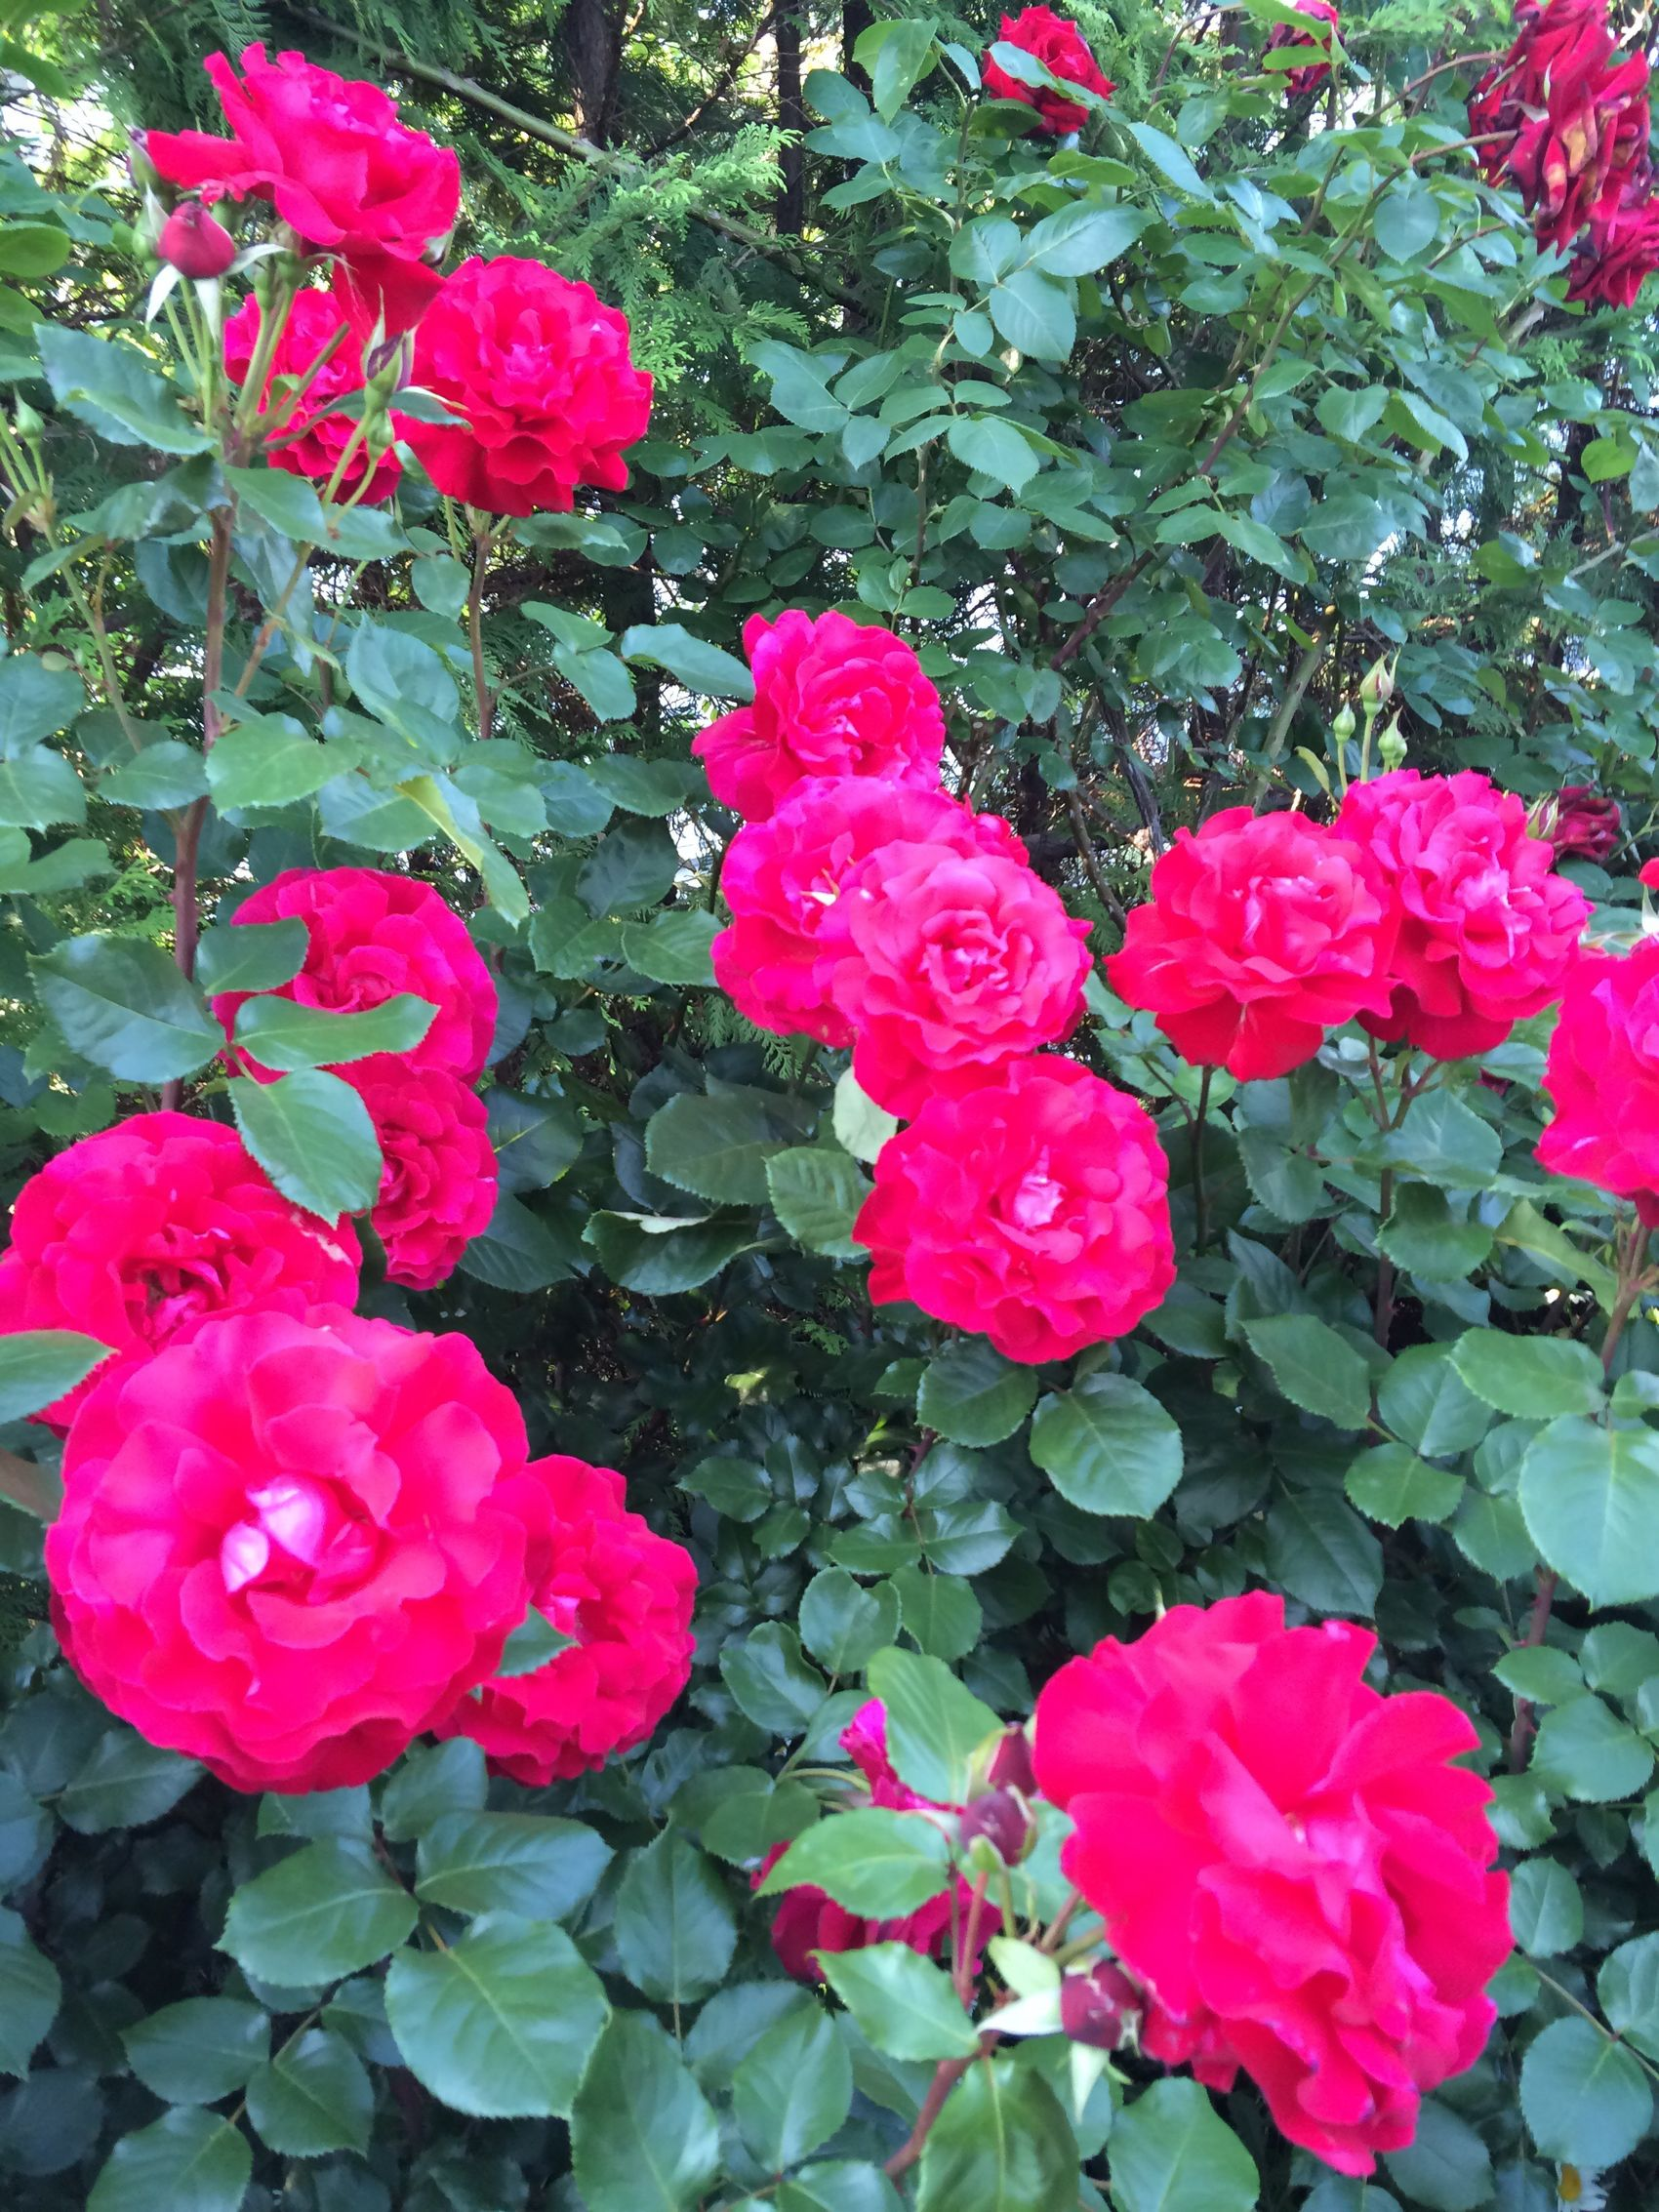 LaMarseillaise France Rose🌹 Red Pink Flower Garden Garden Photography Greatview Nature_collection Beautiful Nature Beautiful Flowers